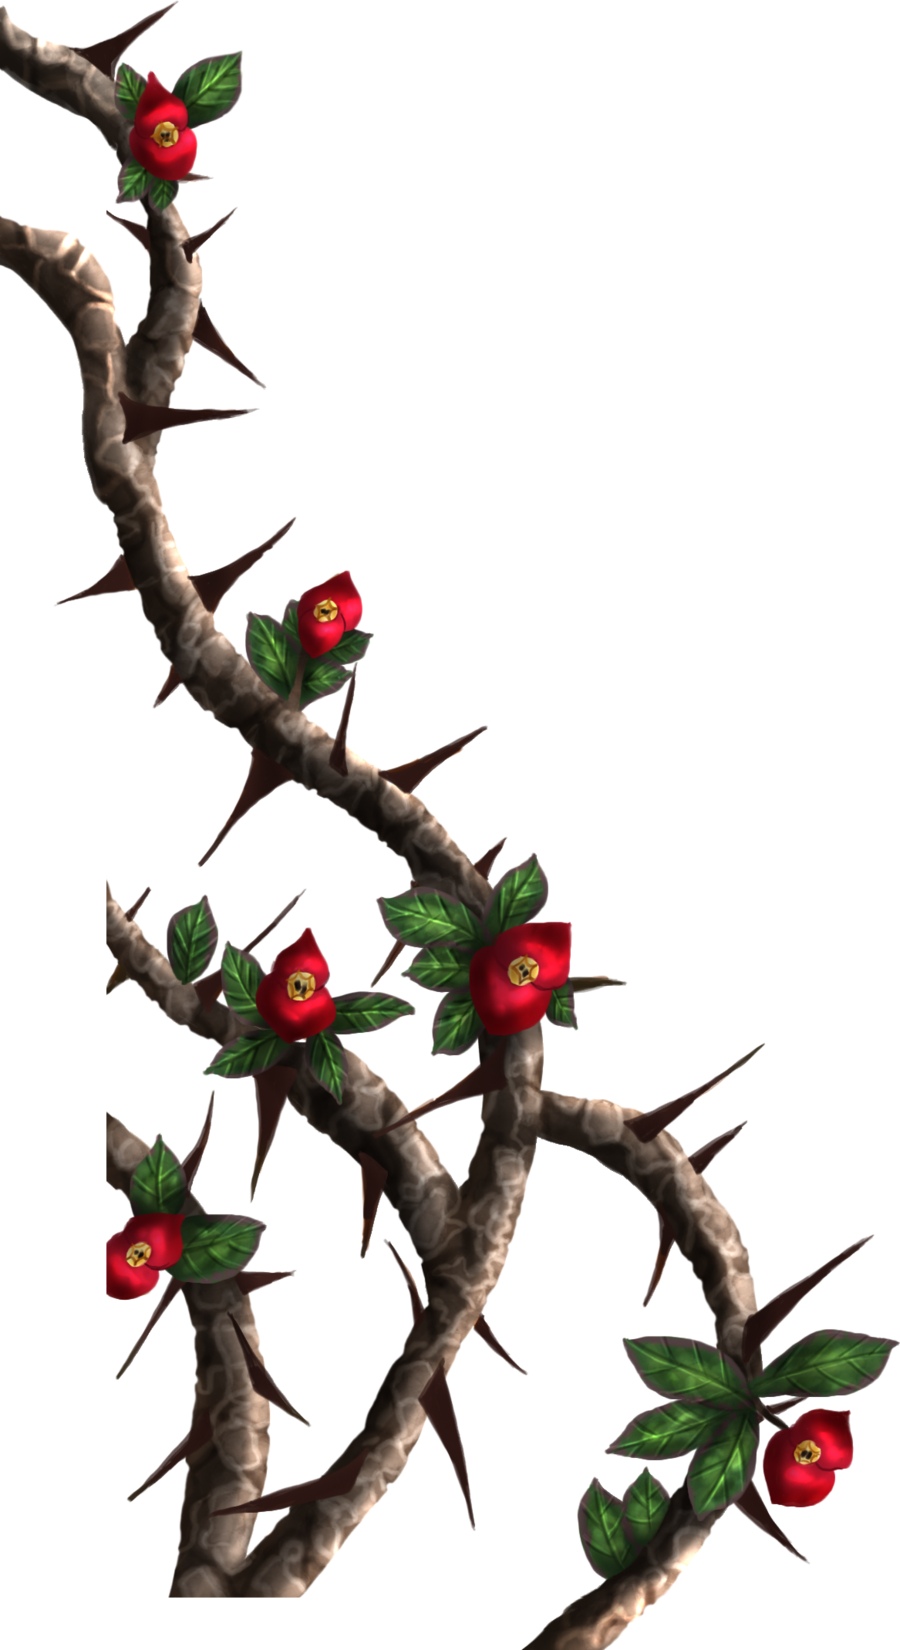 Drawn rose bush thorn bush Of thorn vines DameOdessaStock on